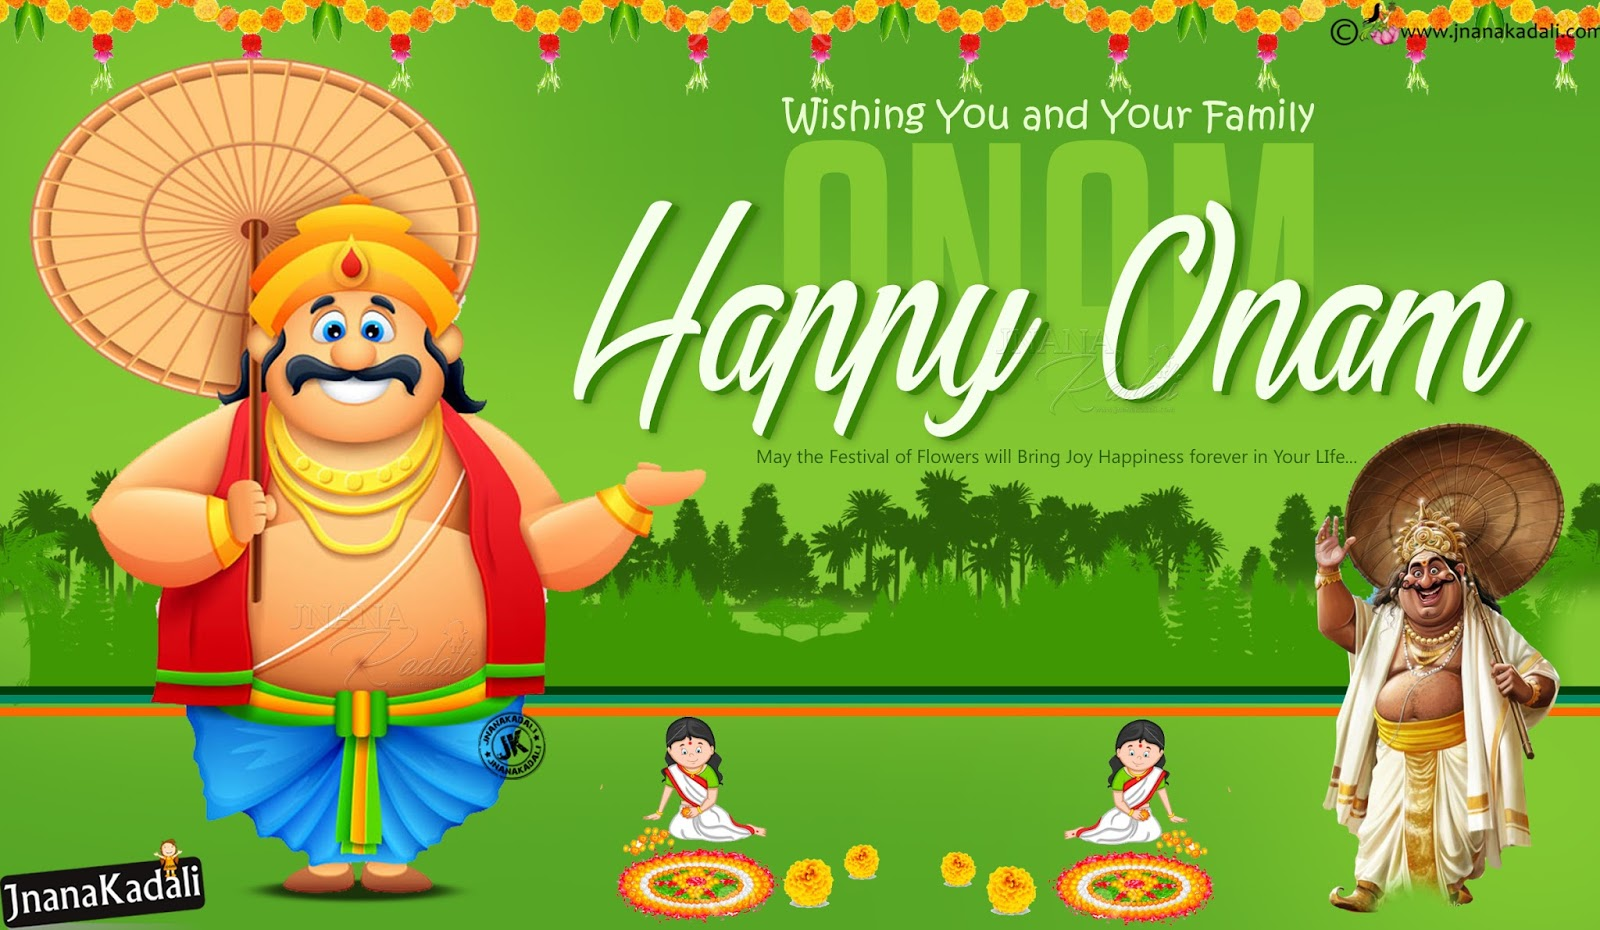 Online trending onam greetings with mabali hd wallpapers free onam hd wallpapers happy onam wallpapers trending onam quotes hd wallpapers free download whats app sharing onam greetings quotes in malayalam kristyandbryce Image collections